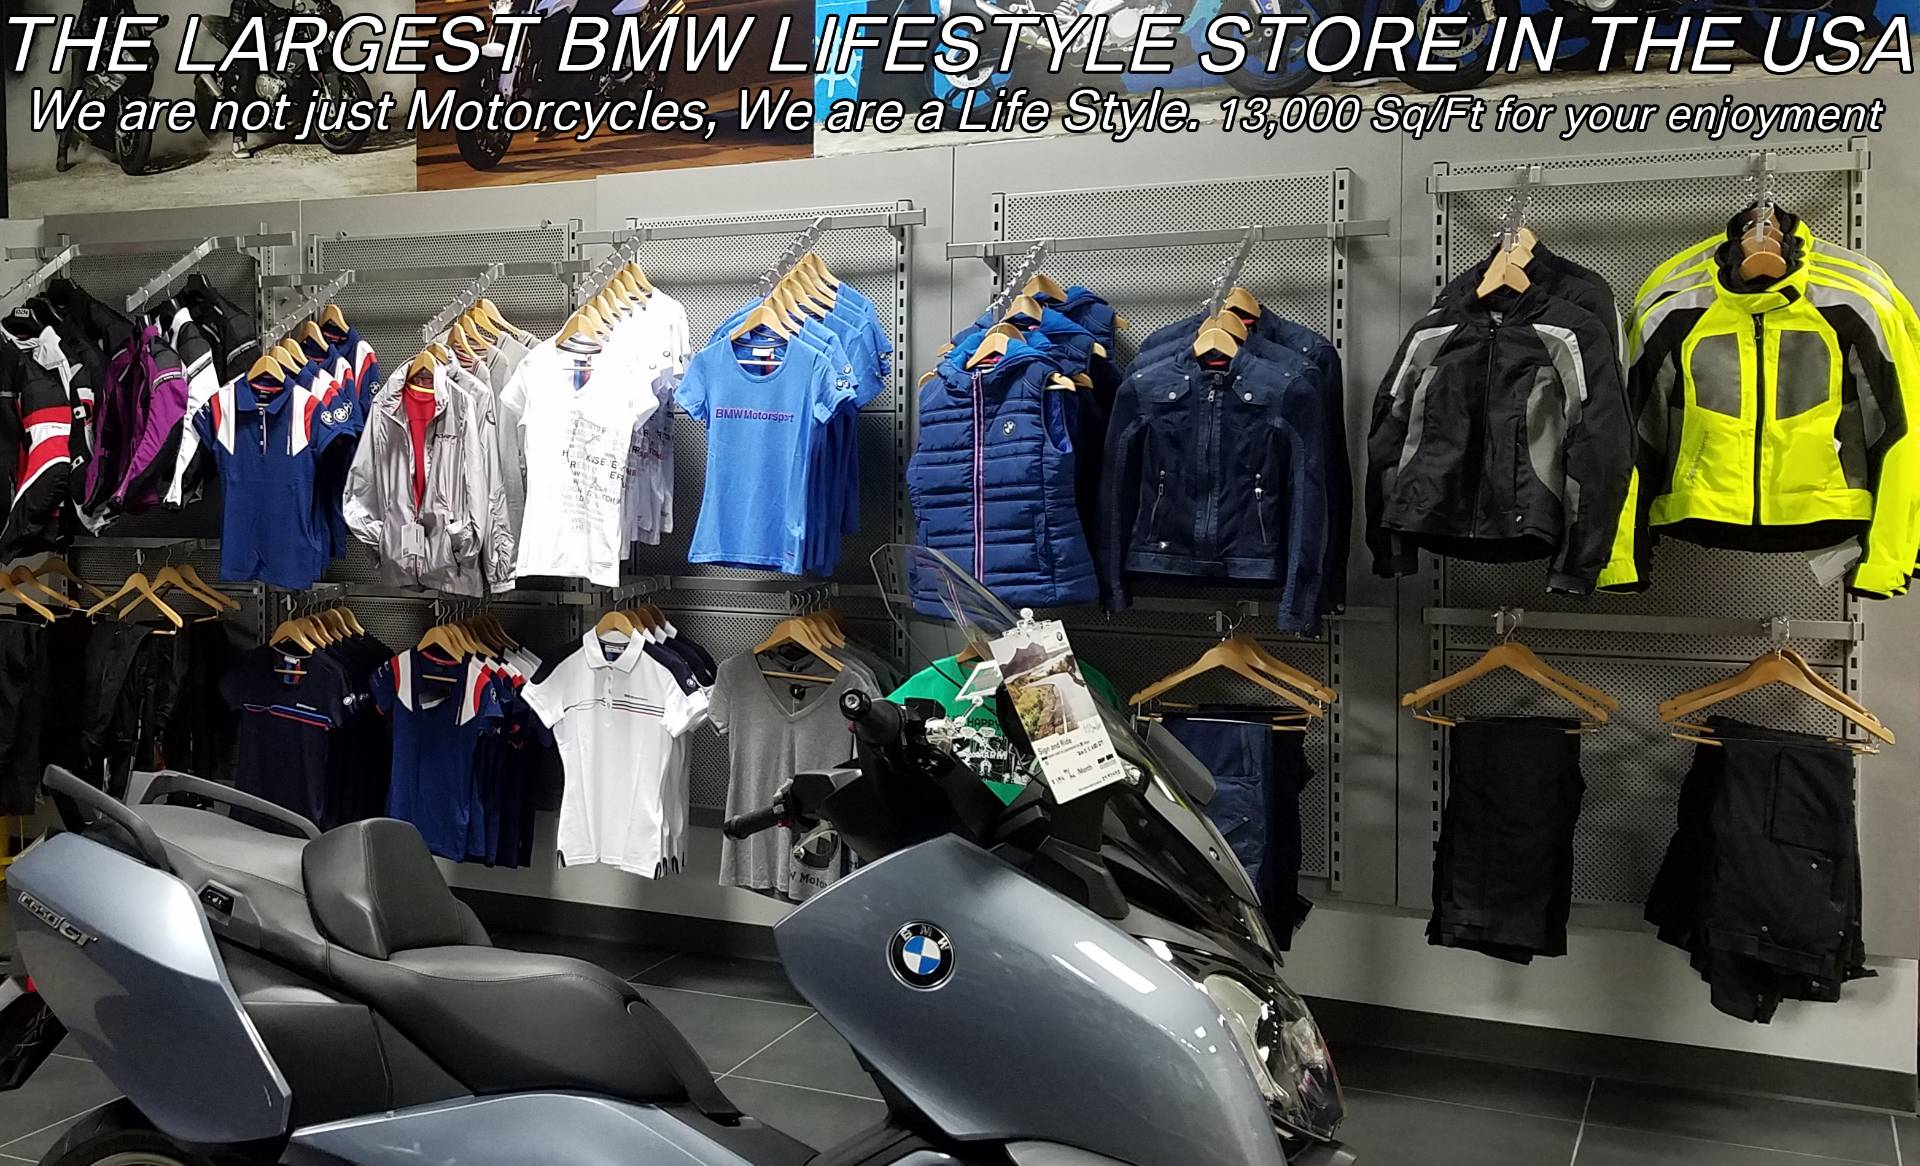 Used 2016 BMW S 1000 XR For Sale, Pre Owned BMW S 1000XR For Sale, Pre-Owned BMW Motorcycle S1000XR, BMW Motorcycle, S 1000 XR, DUAL, BMW - Photo 27